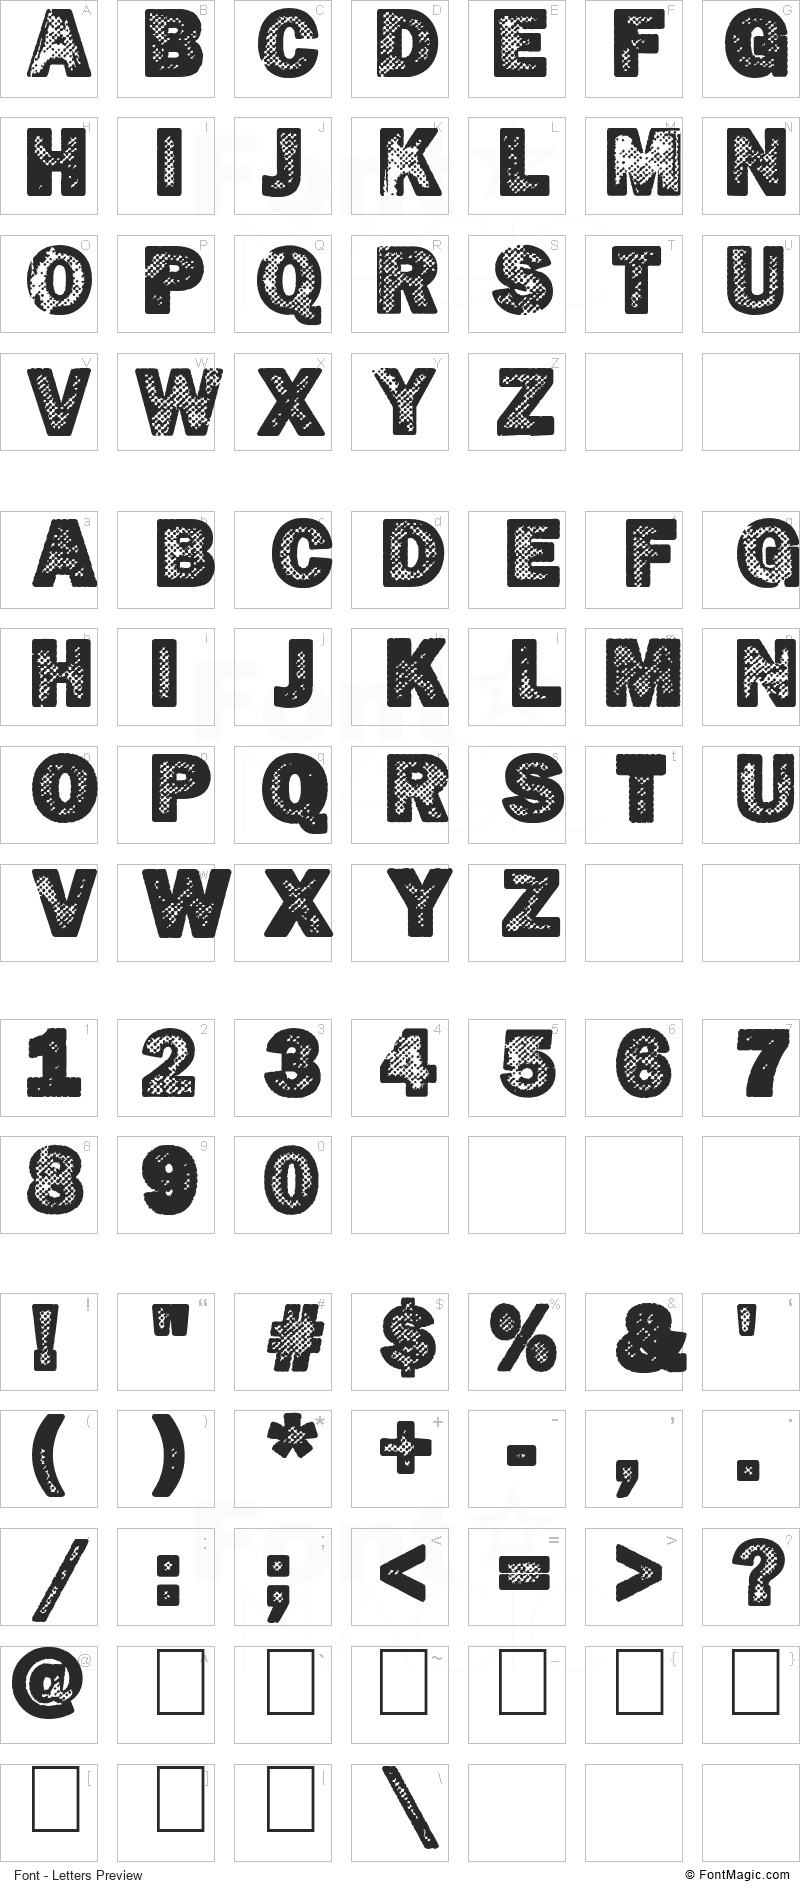 Hotöcop Font - All Latters Preview Chart